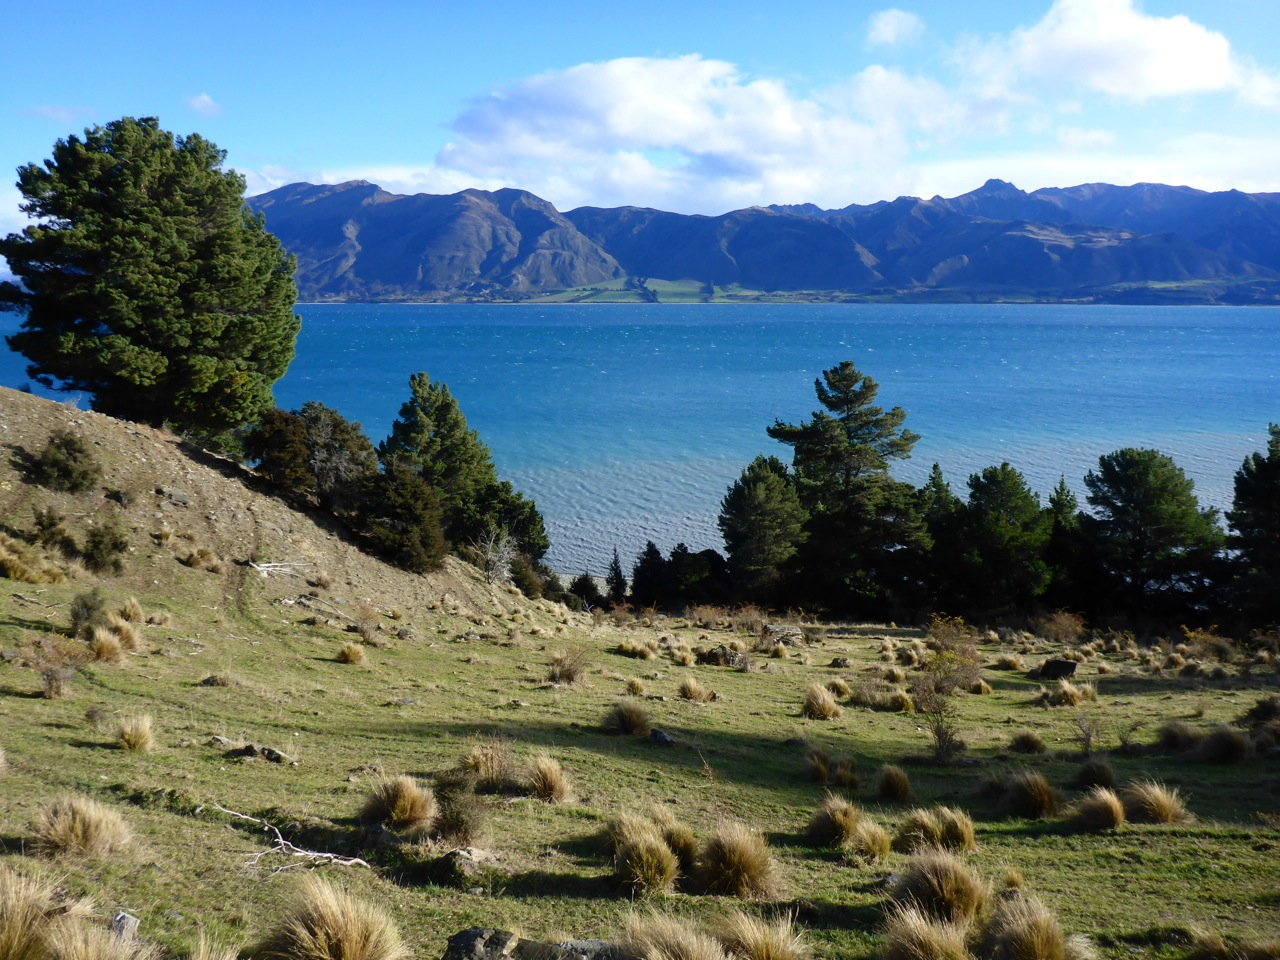 A lovely view over lake Hawea near Timaru Creek mouth.